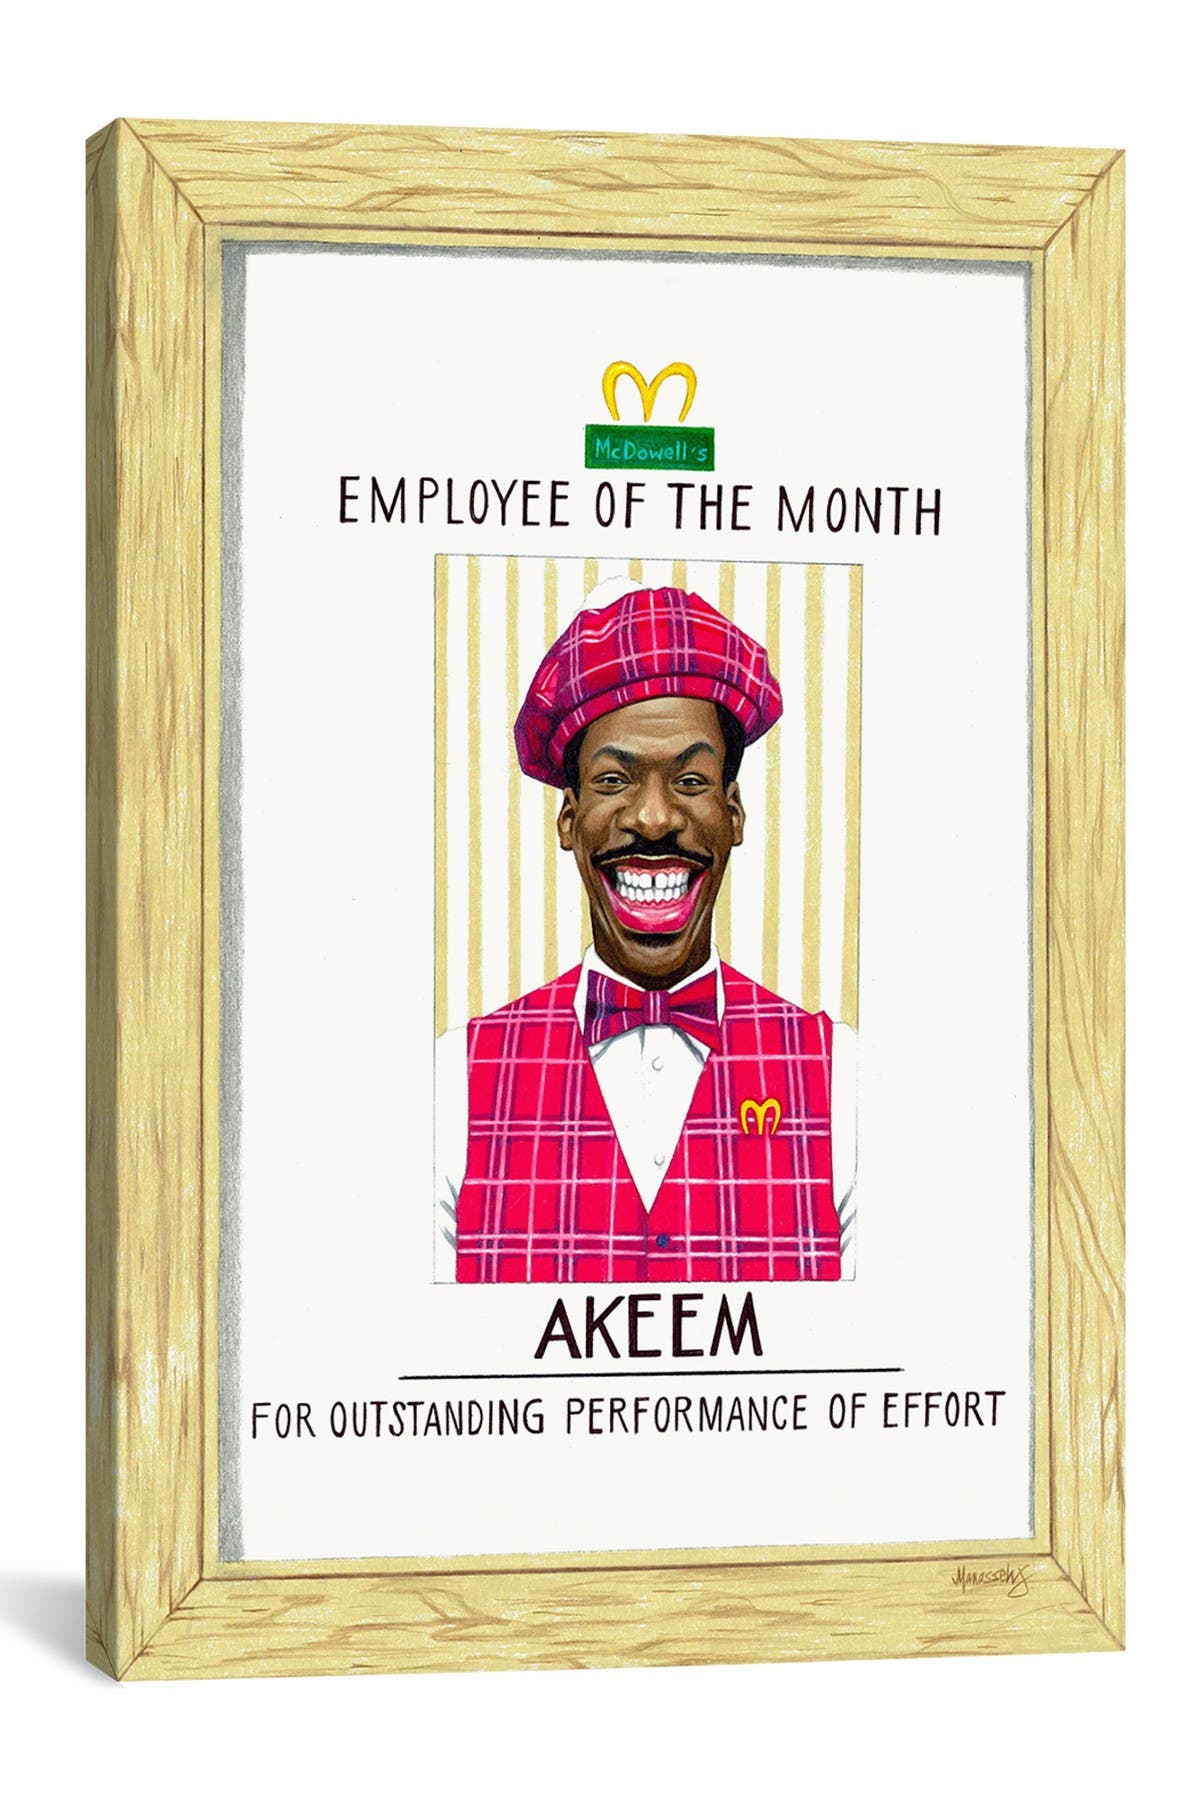 Image of iCanvas Akeem, Employee Of The Month by Manasseh Johnson